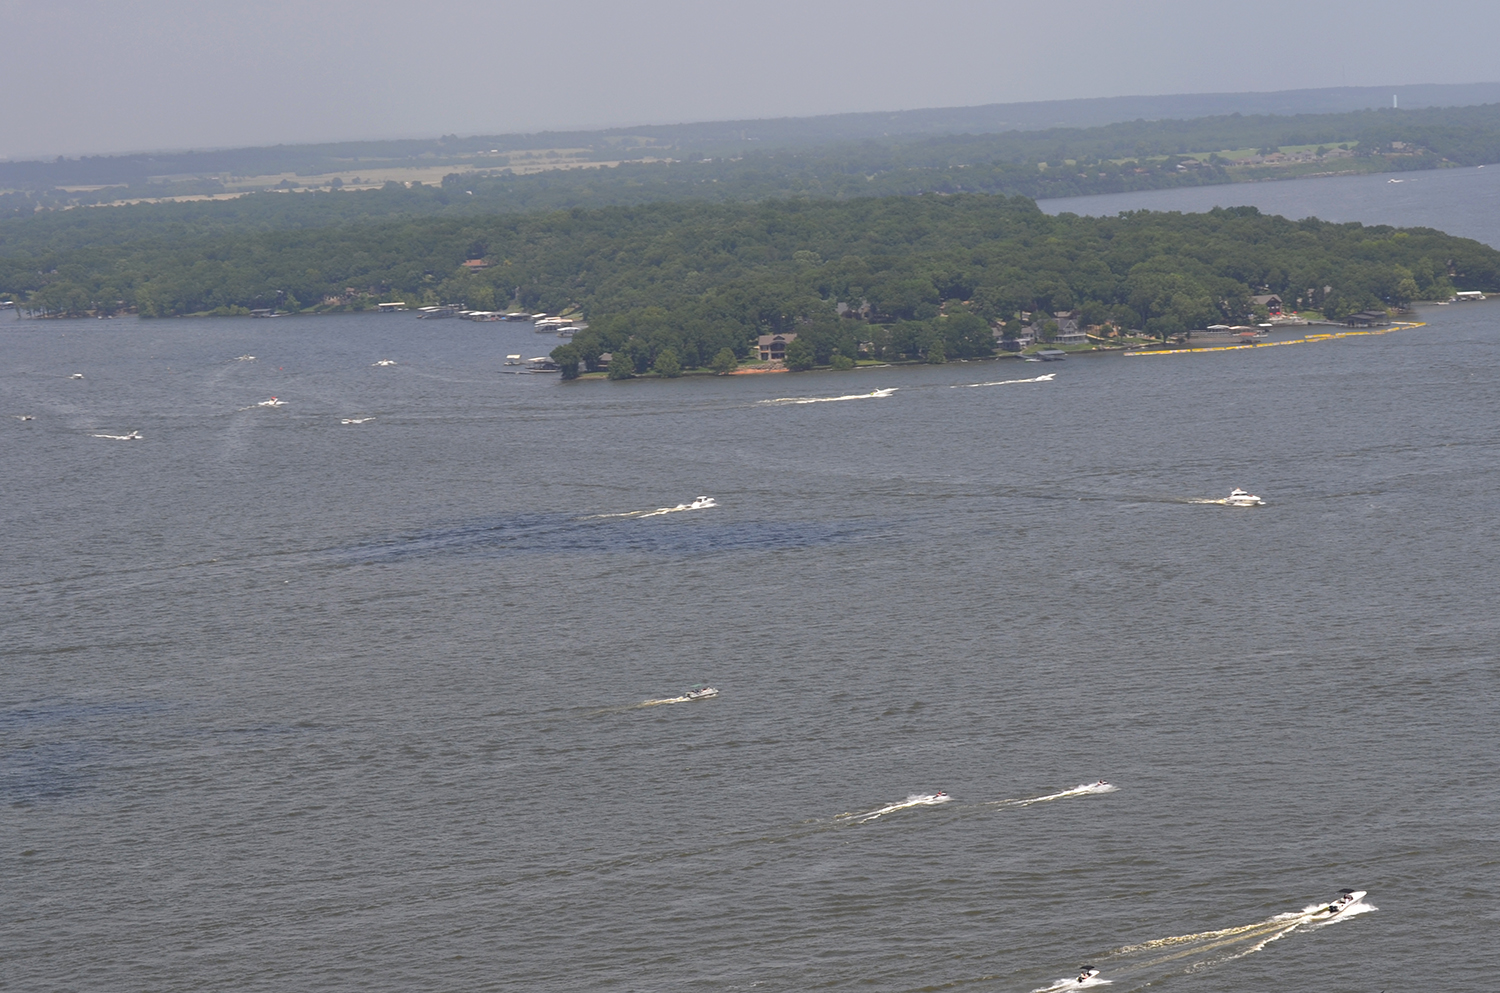 Boats Make Their Way Across The Waters Of Grand Lake On A Summer Day.